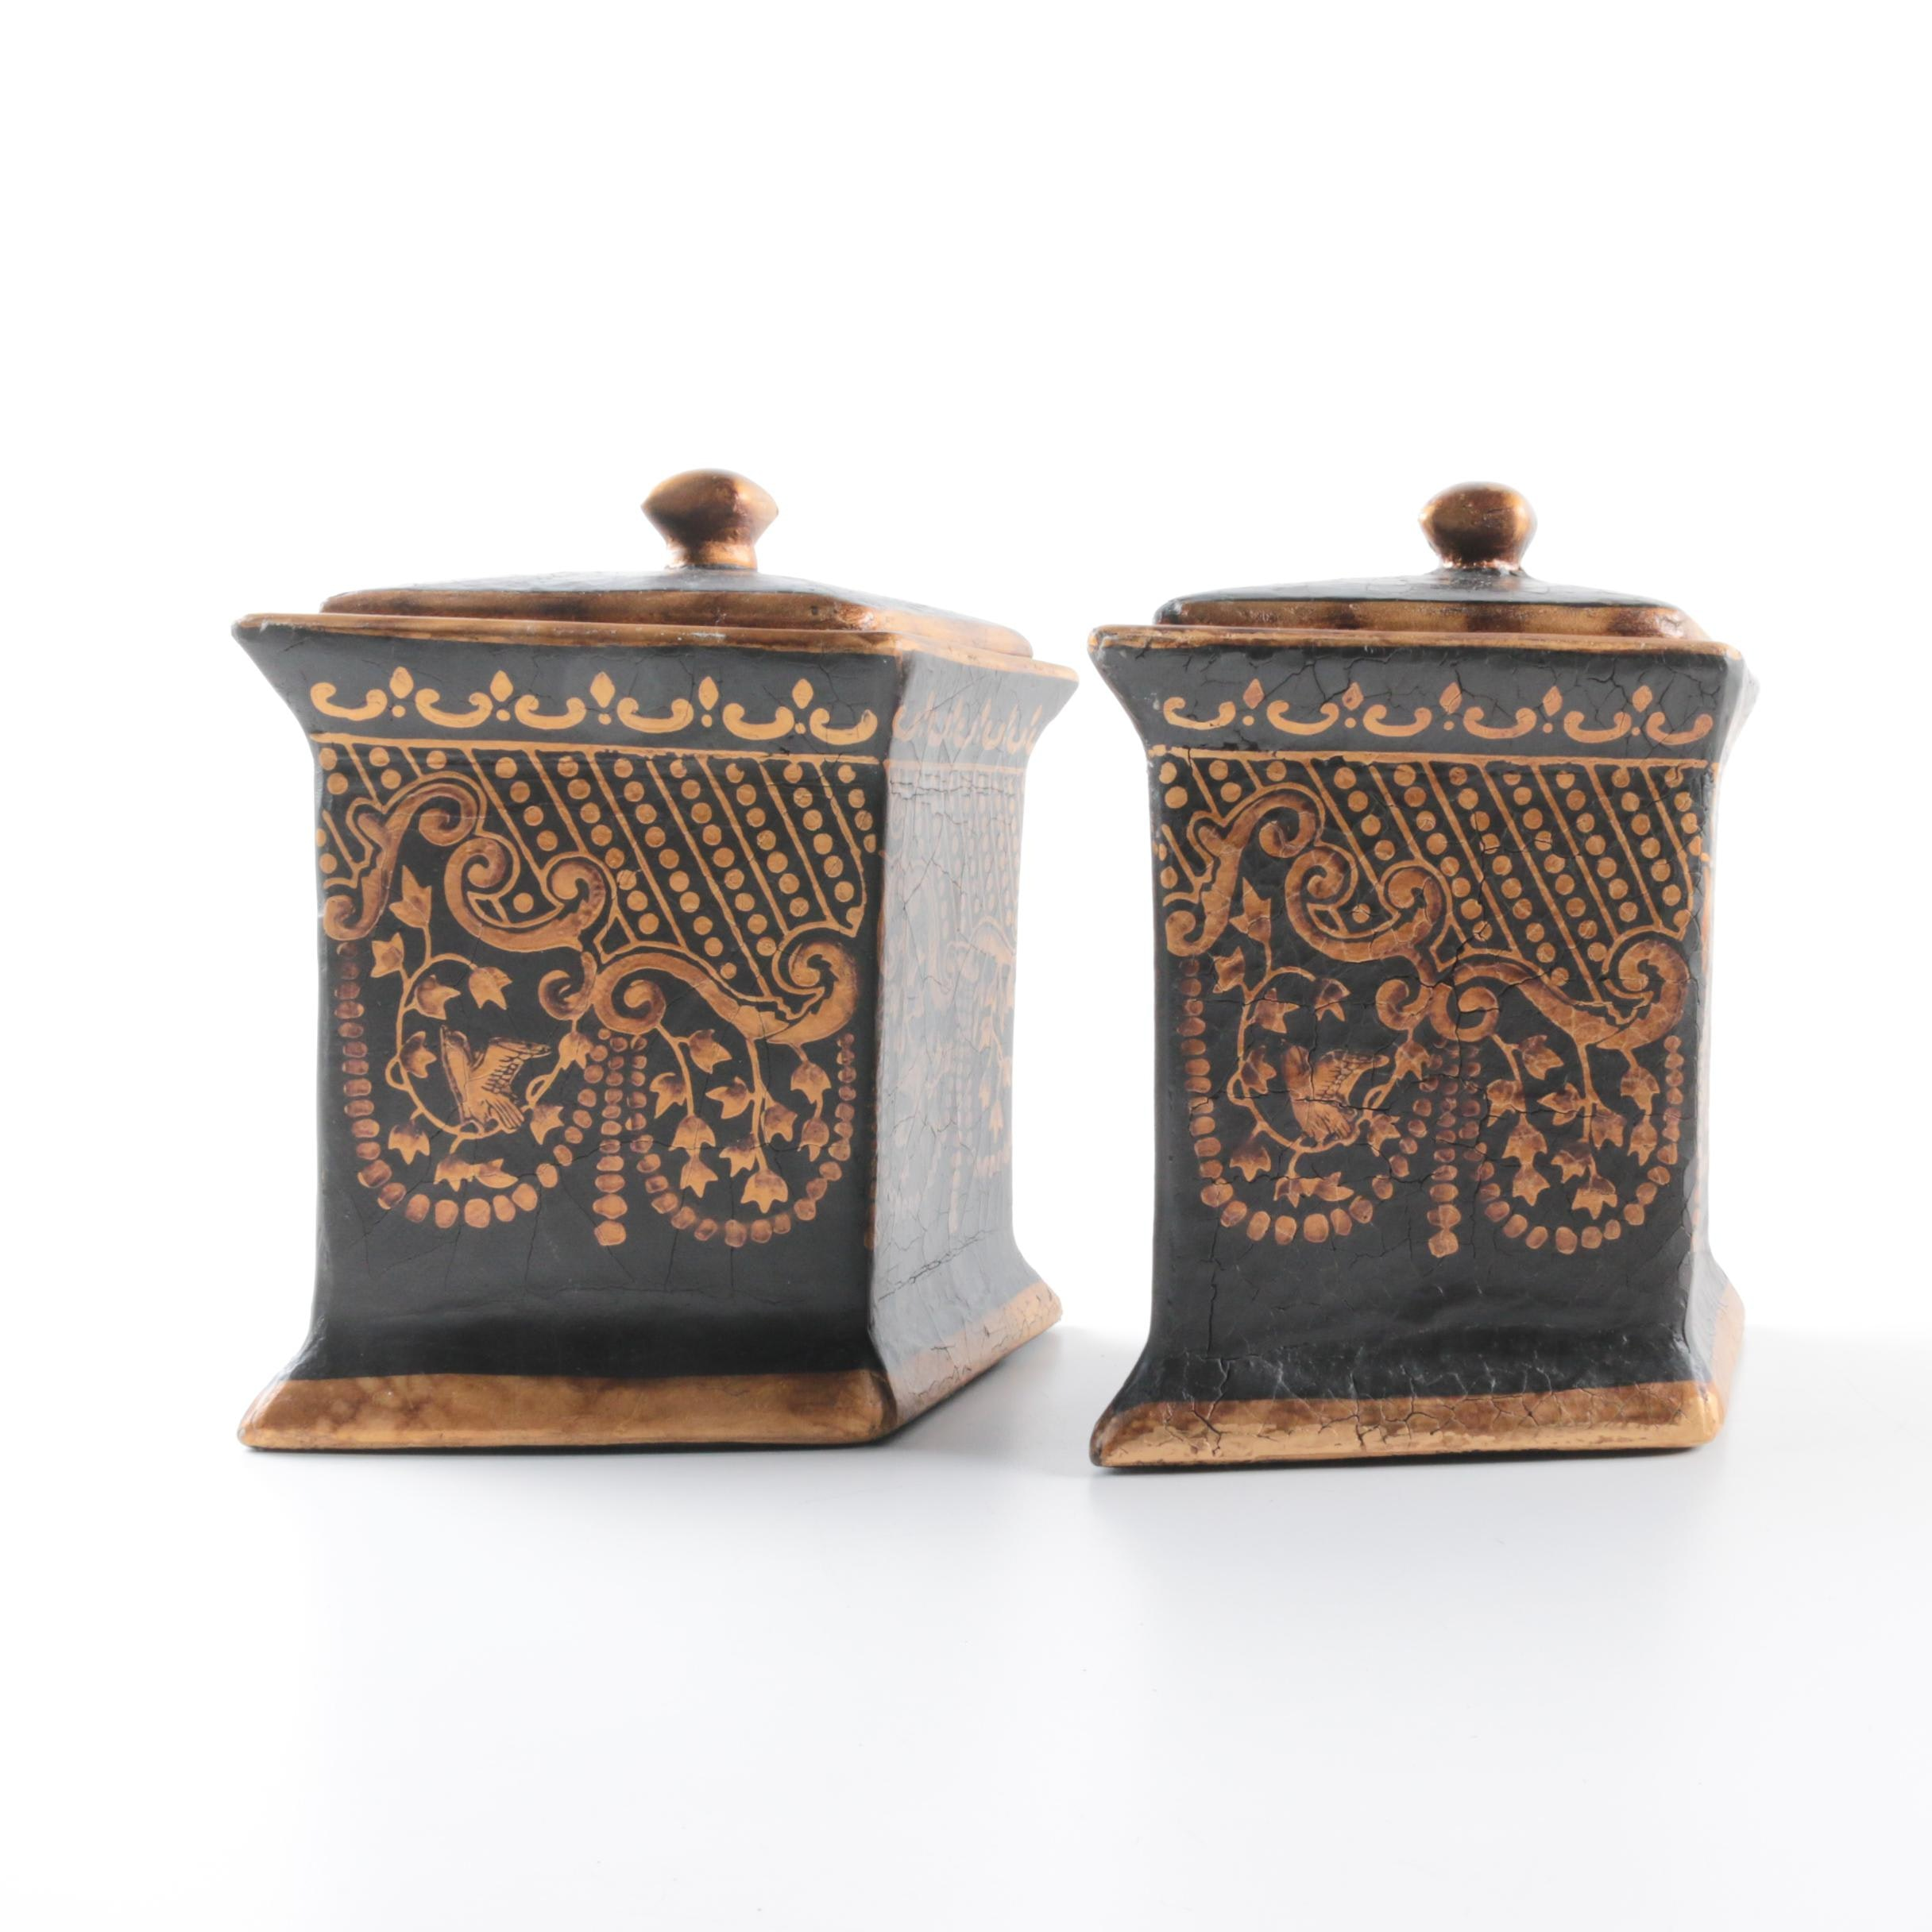 Matching Diamond Shaped Ceramic Containers